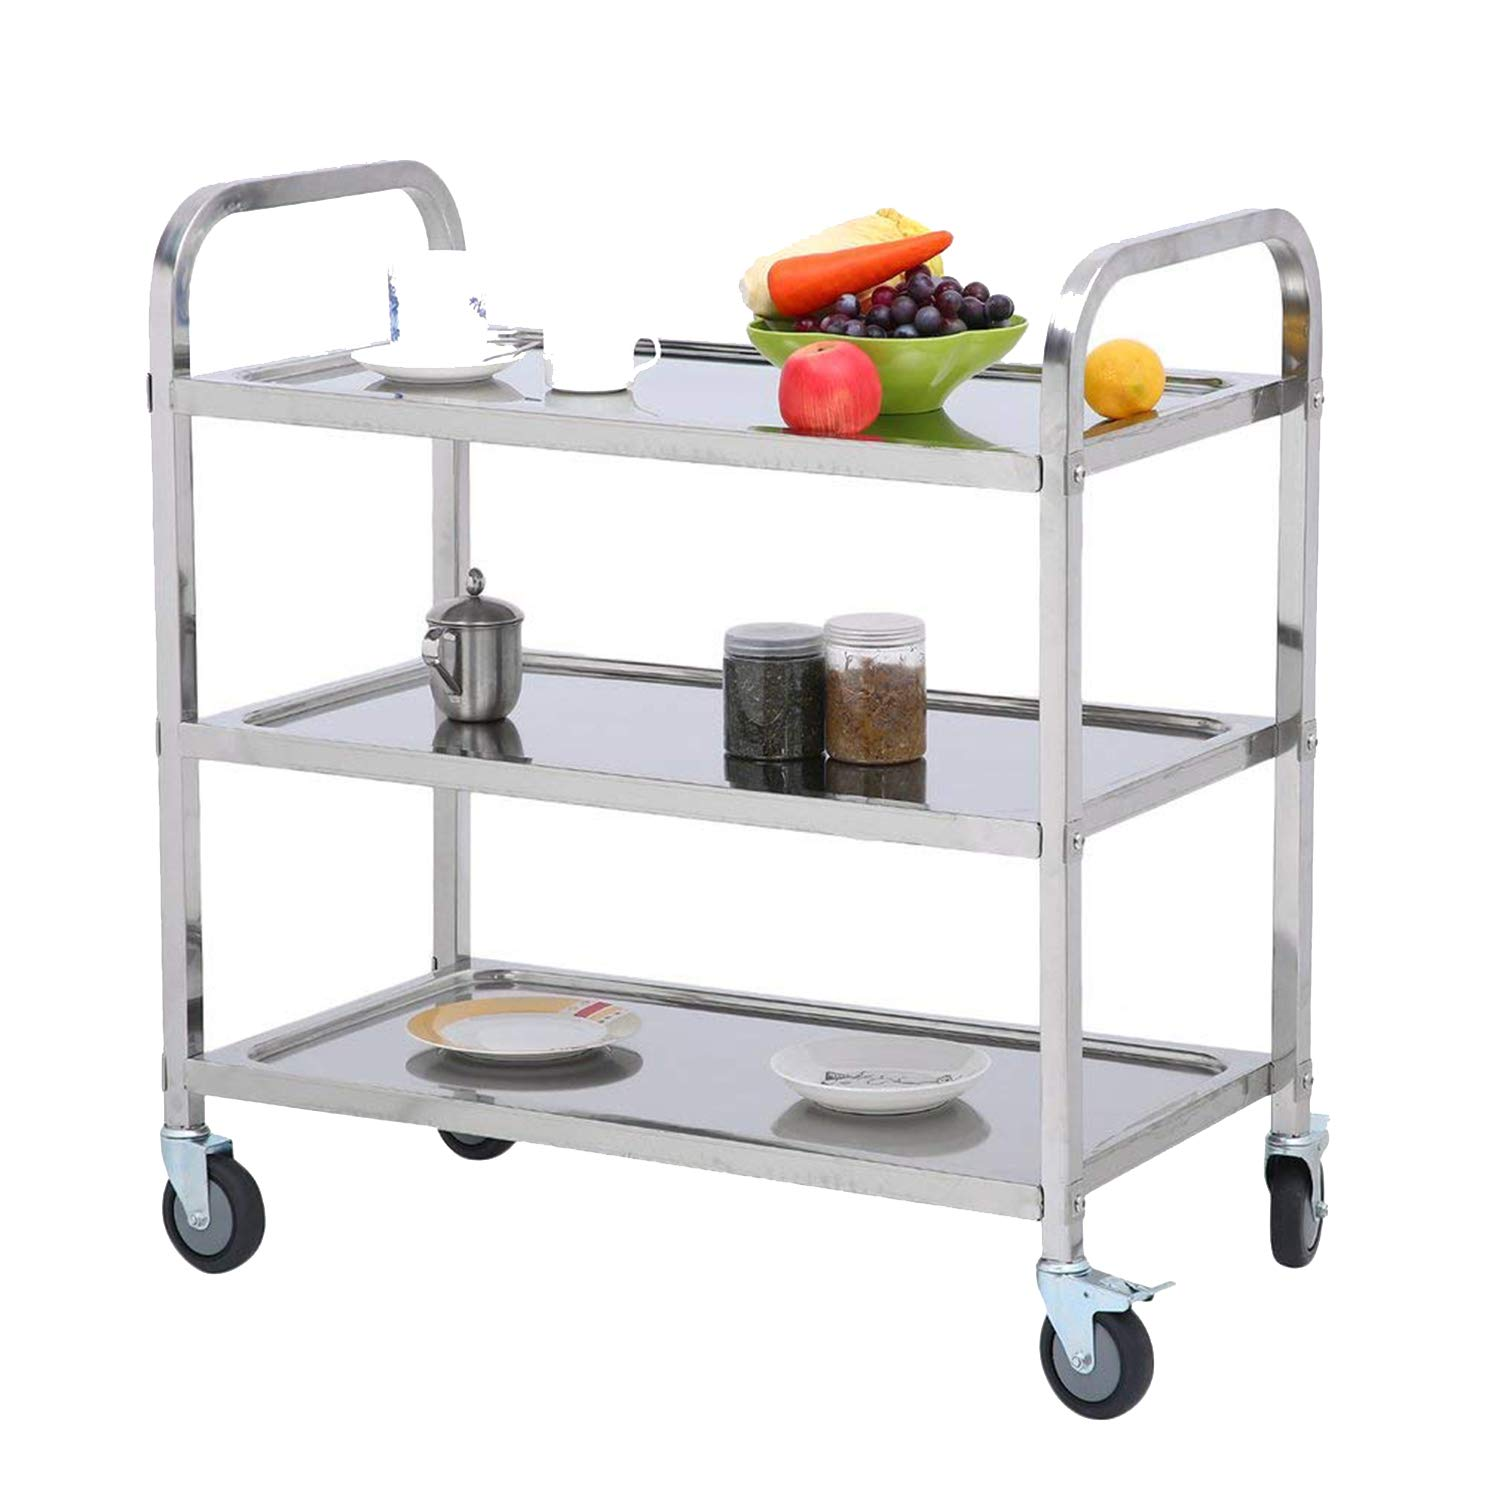 Nisorpa 3 Tier Stainless Steel Utility Cart with Wheels Kitchen Island Trolley Serving Cart Catering Storage Shelf with Locking Wheels for Hotels Restaurant Home Use L30xW16xH33inch by Nisorpa